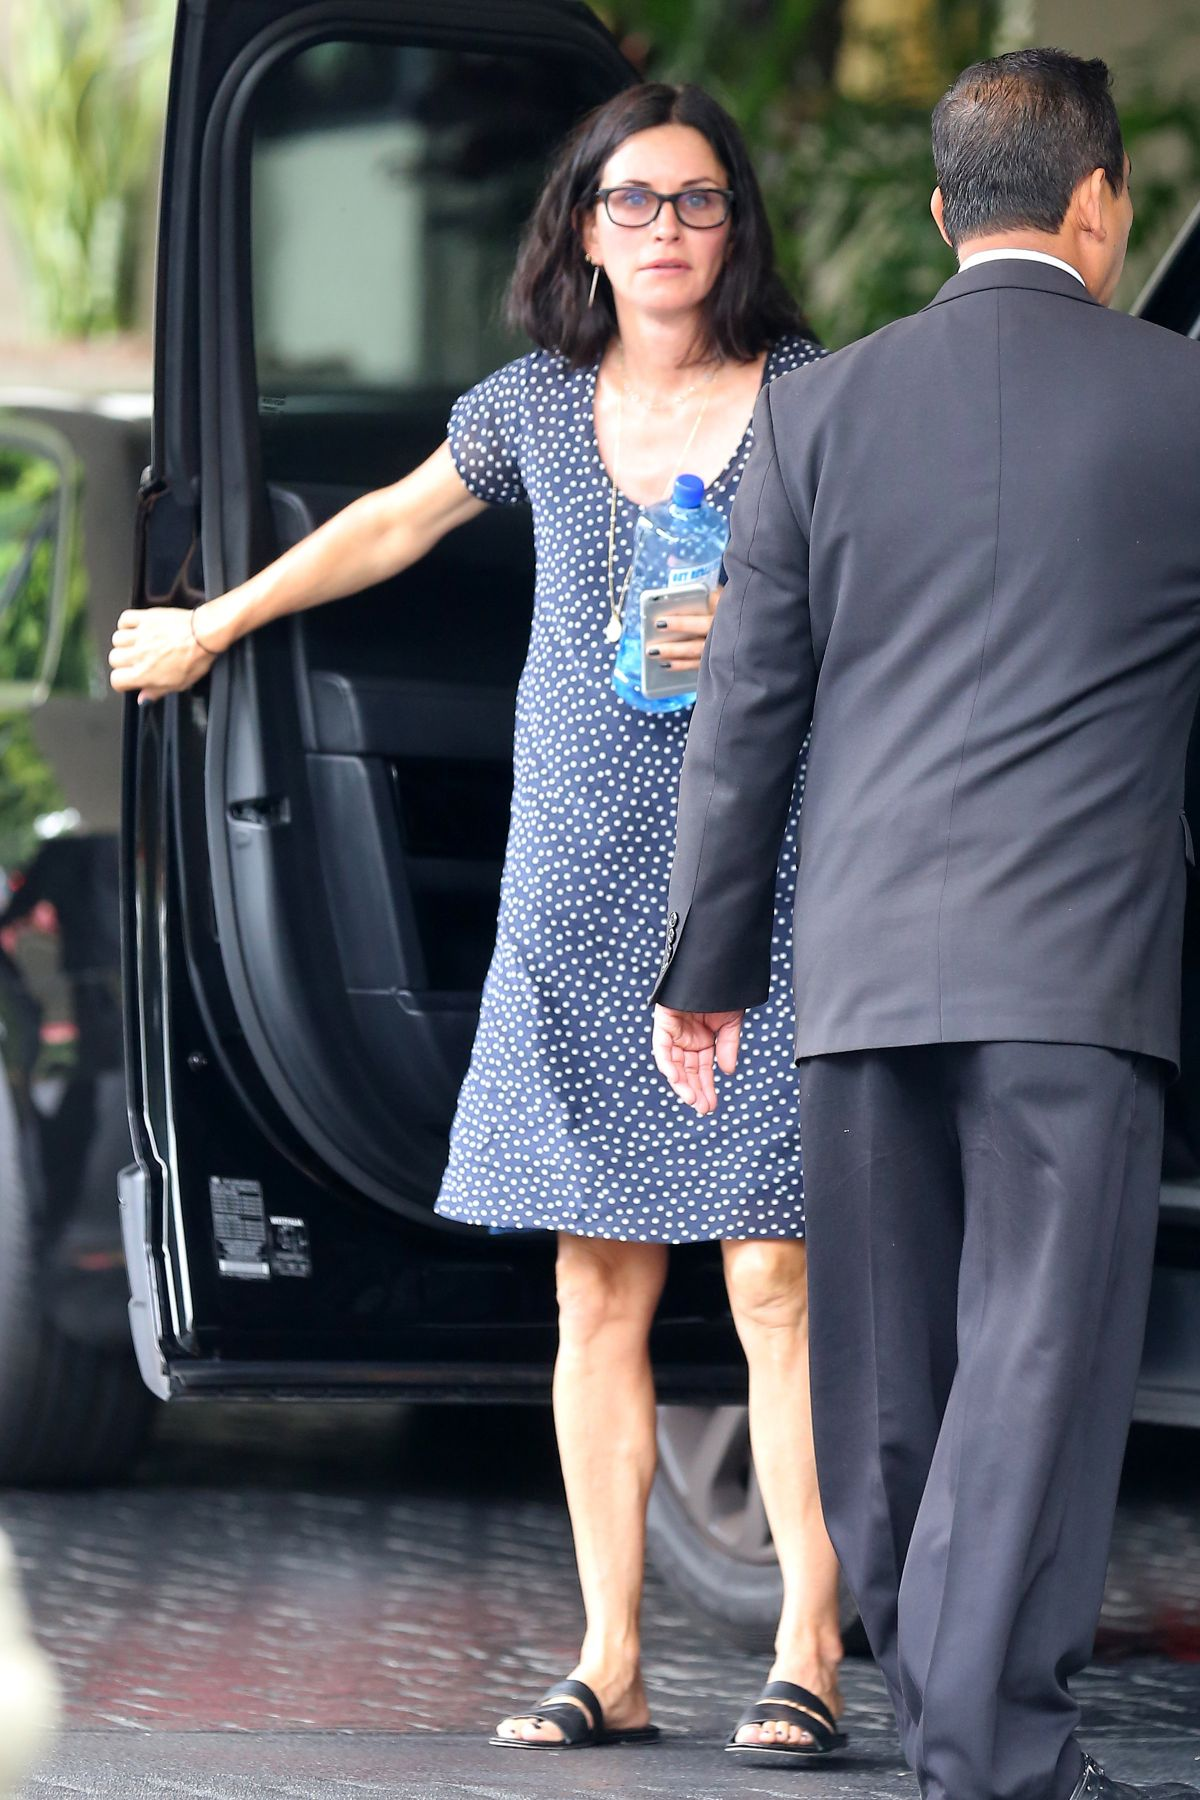 Courtney Cox Out And About In Beverly Hills 06 04 2015